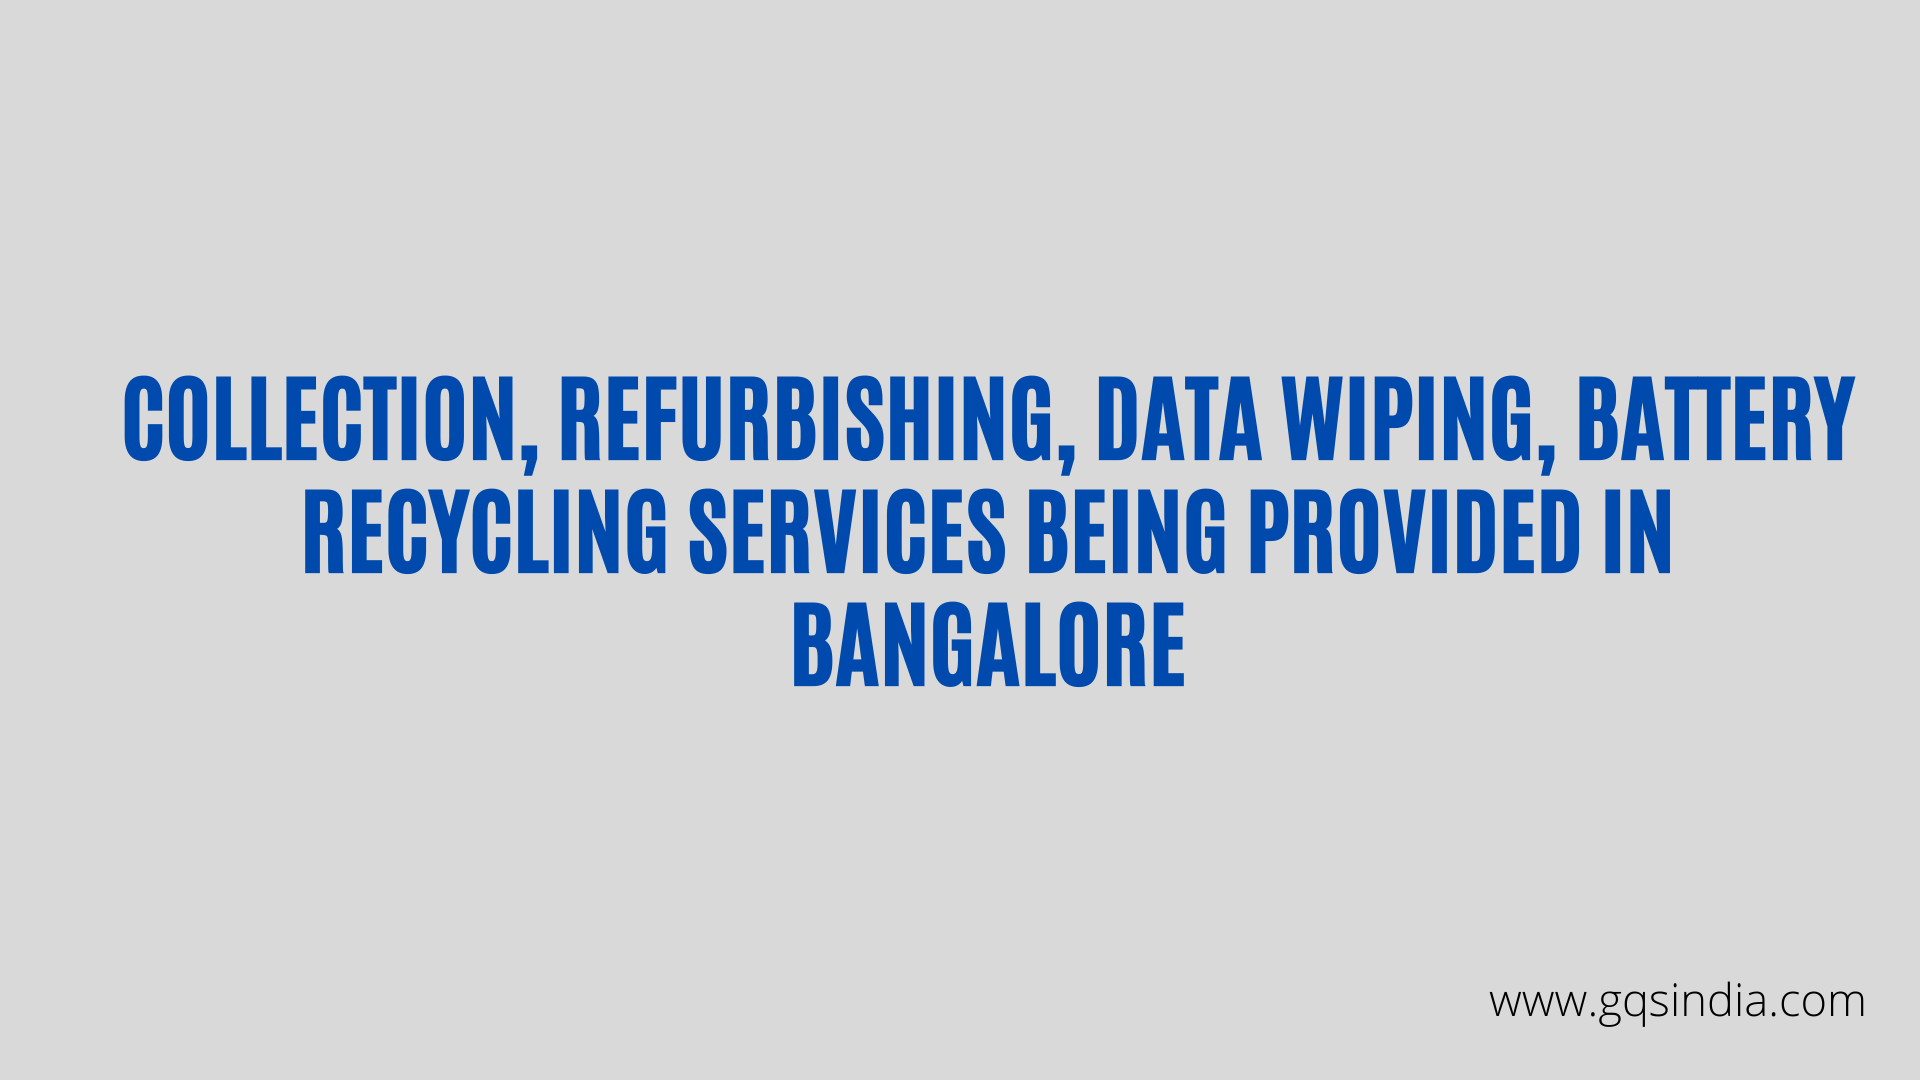 Collection, Refurbishing, Data wiping, Battery recycling services being provided in Bangalore